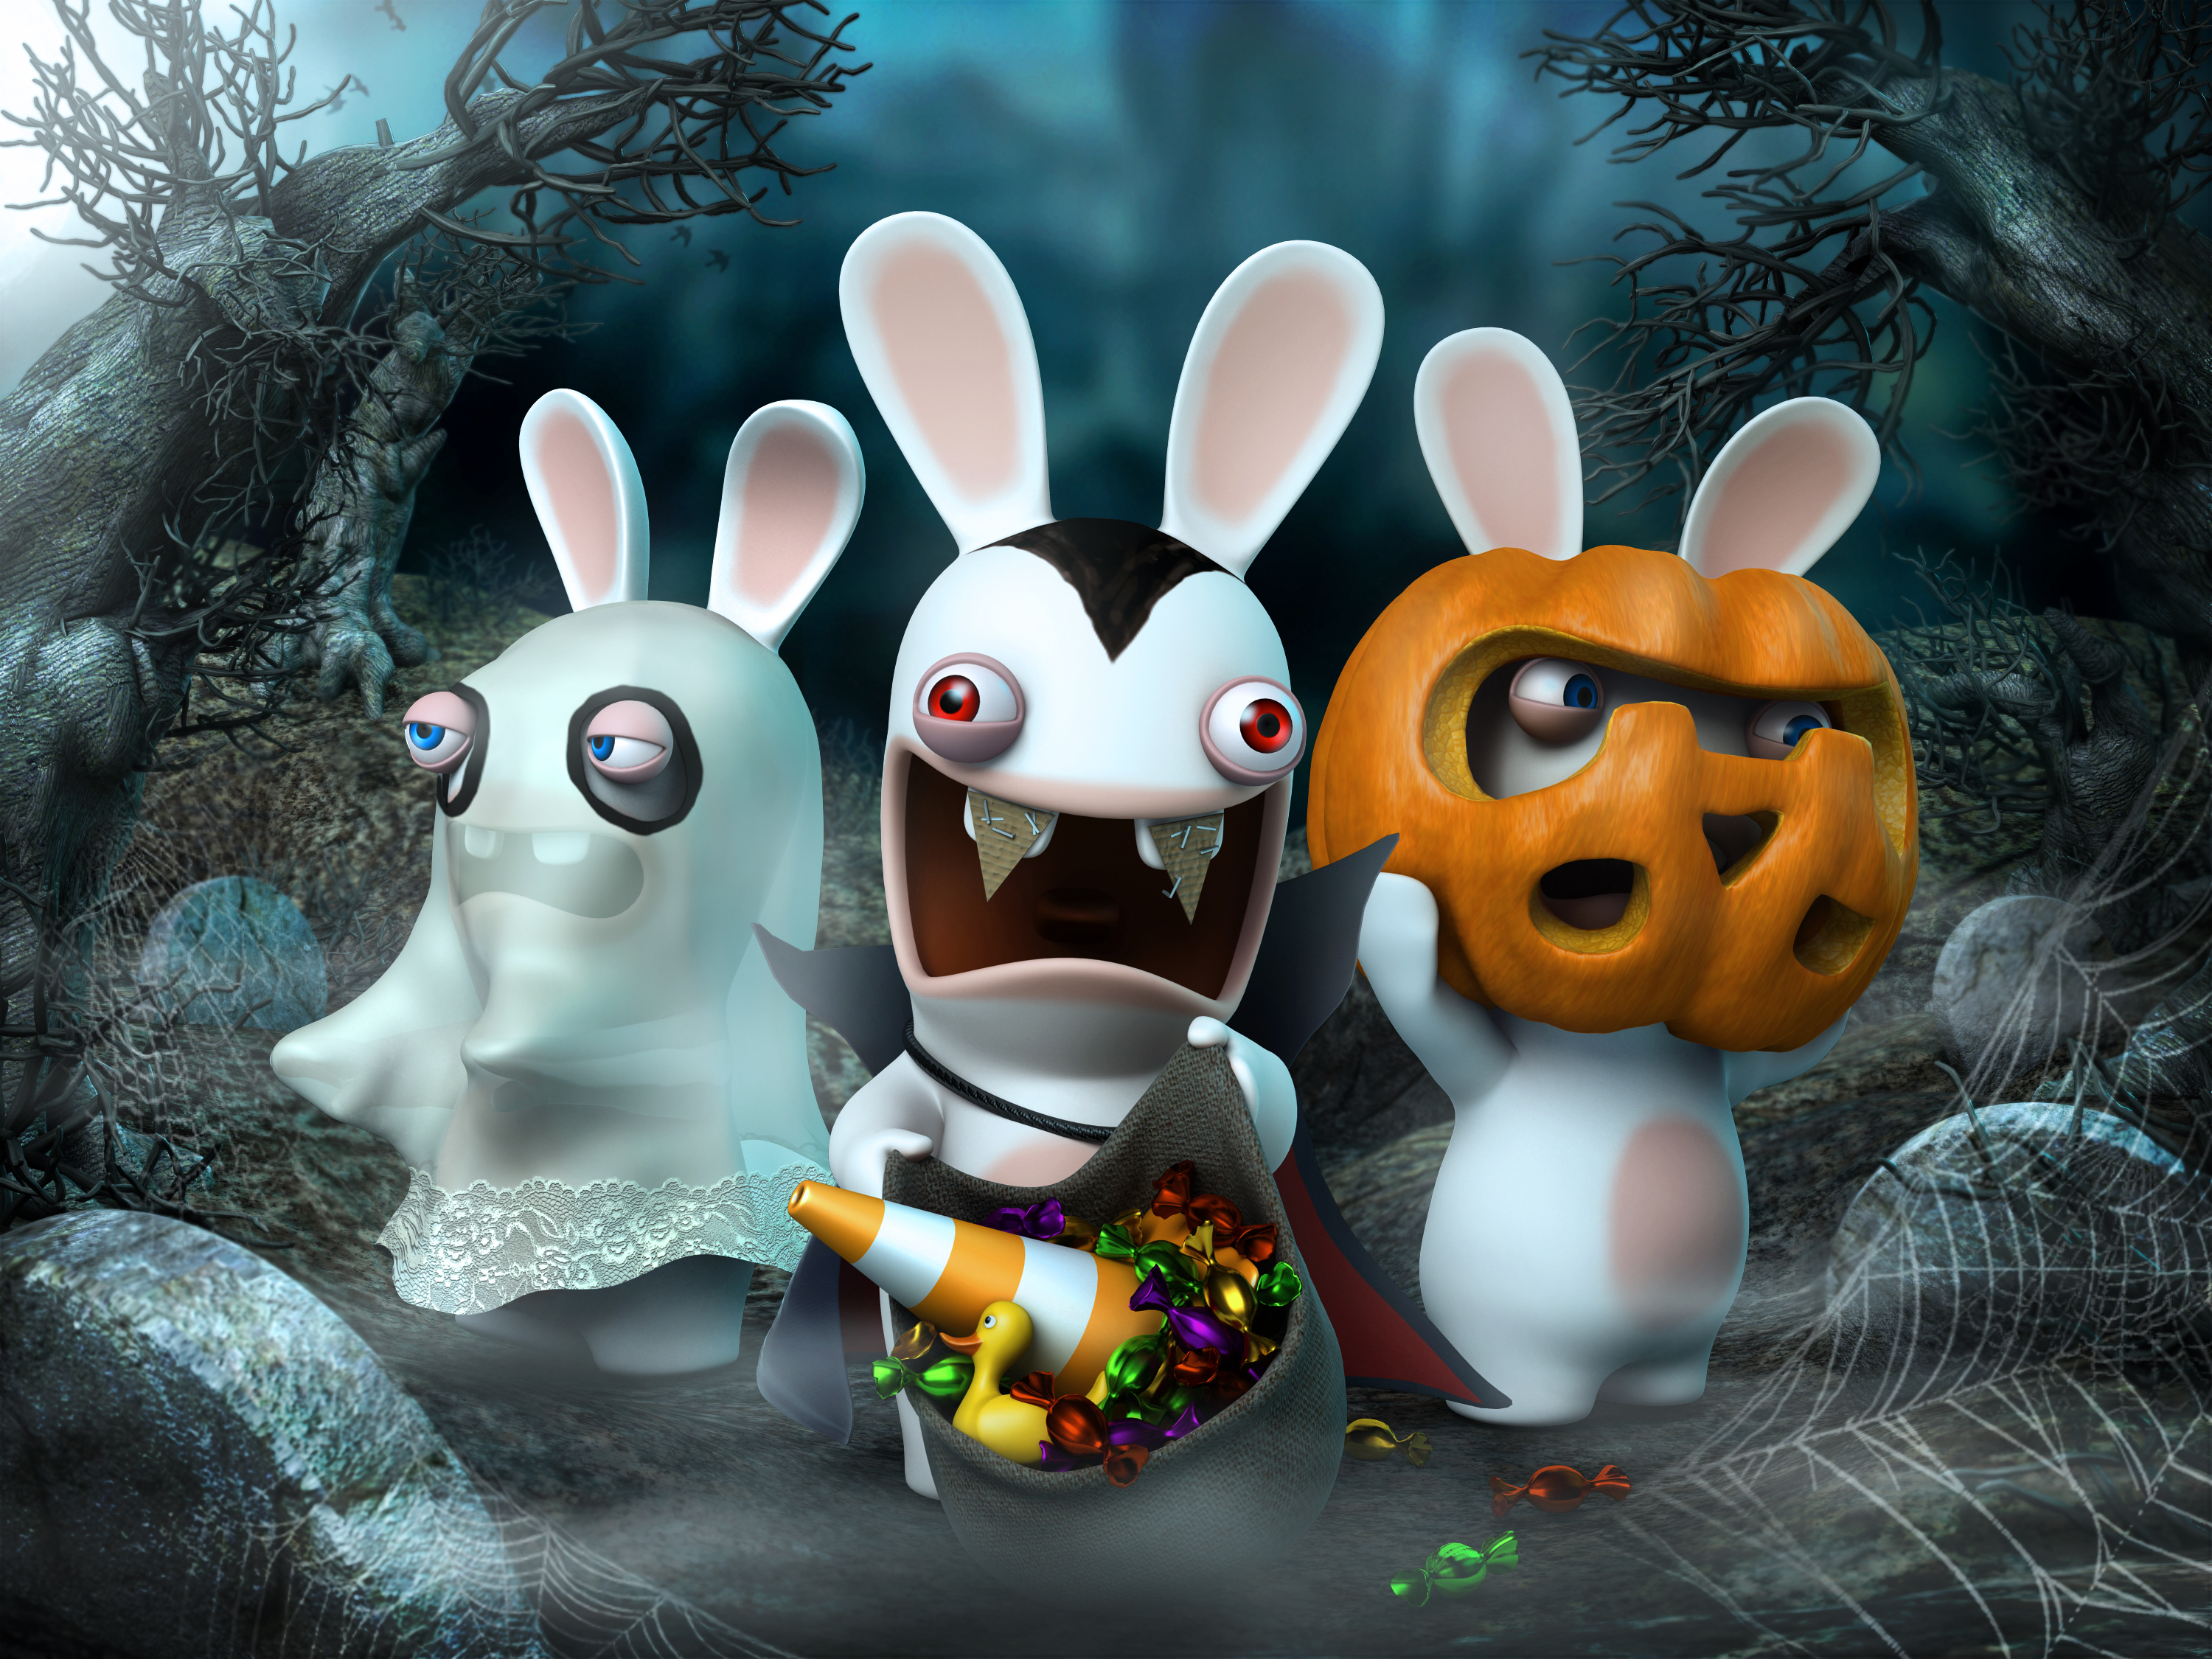 rabbids portal media official website ubisoft - Raving Rabbids Halloween Costume